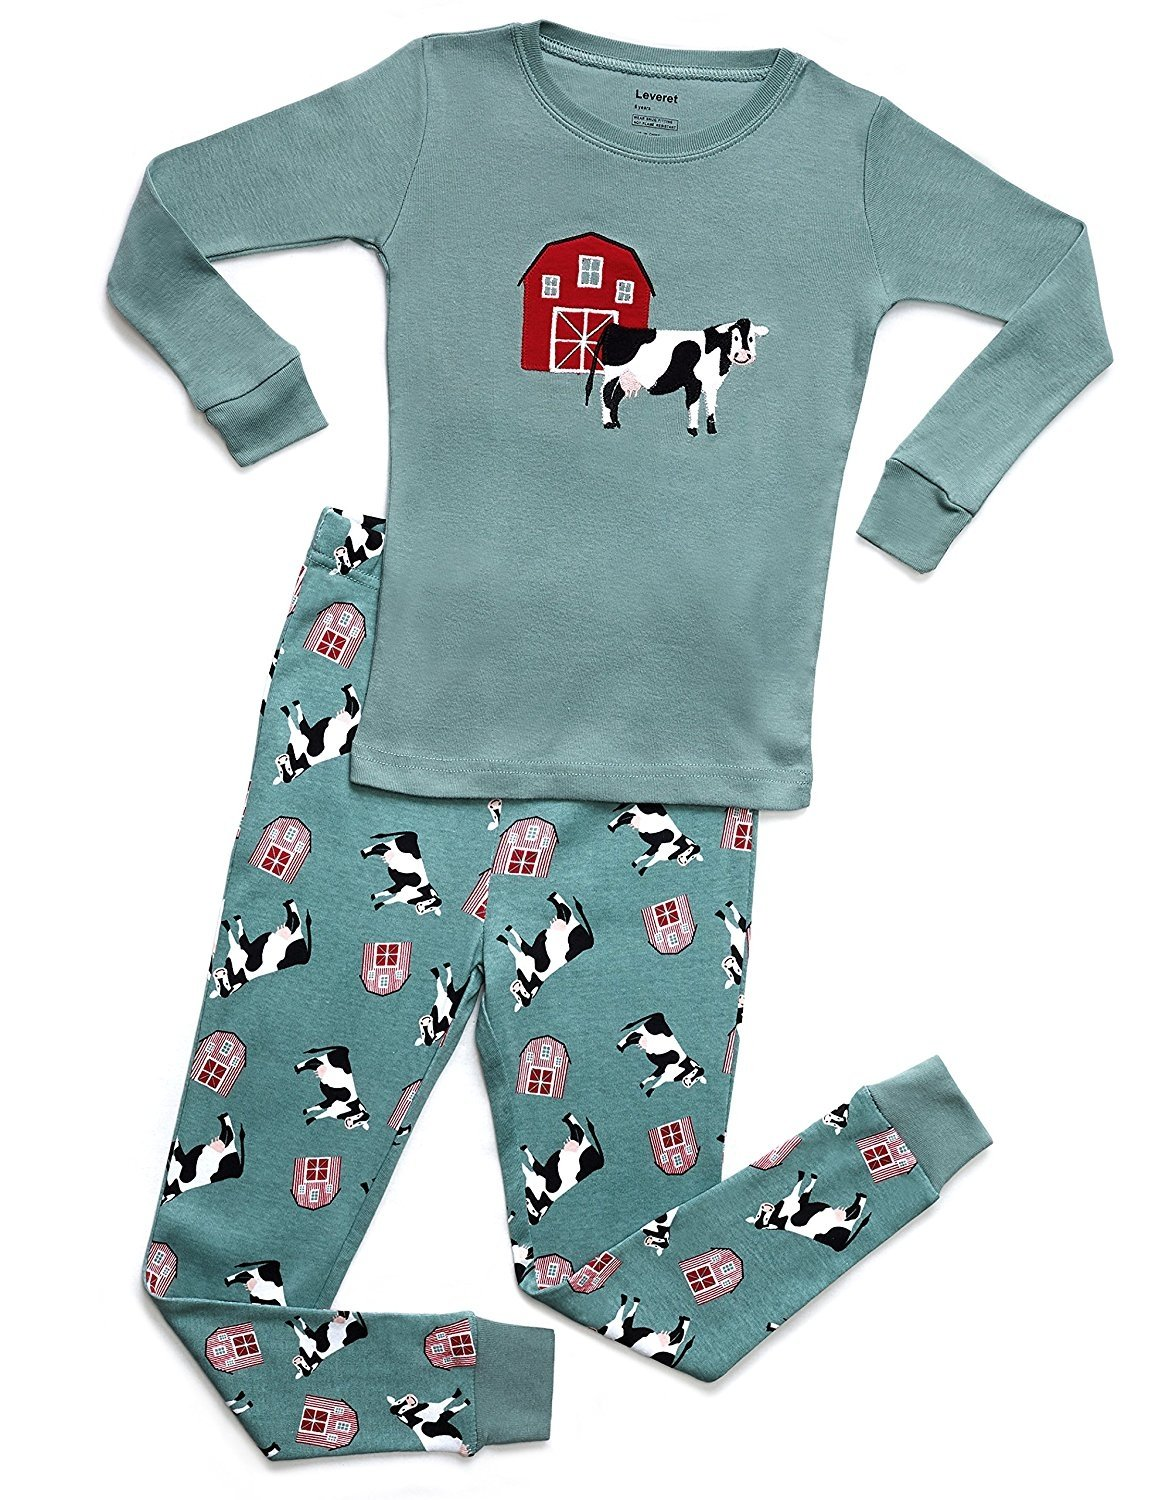 Leveret Organic Cotton Cow 2 Piece Pajama Set 8 Years